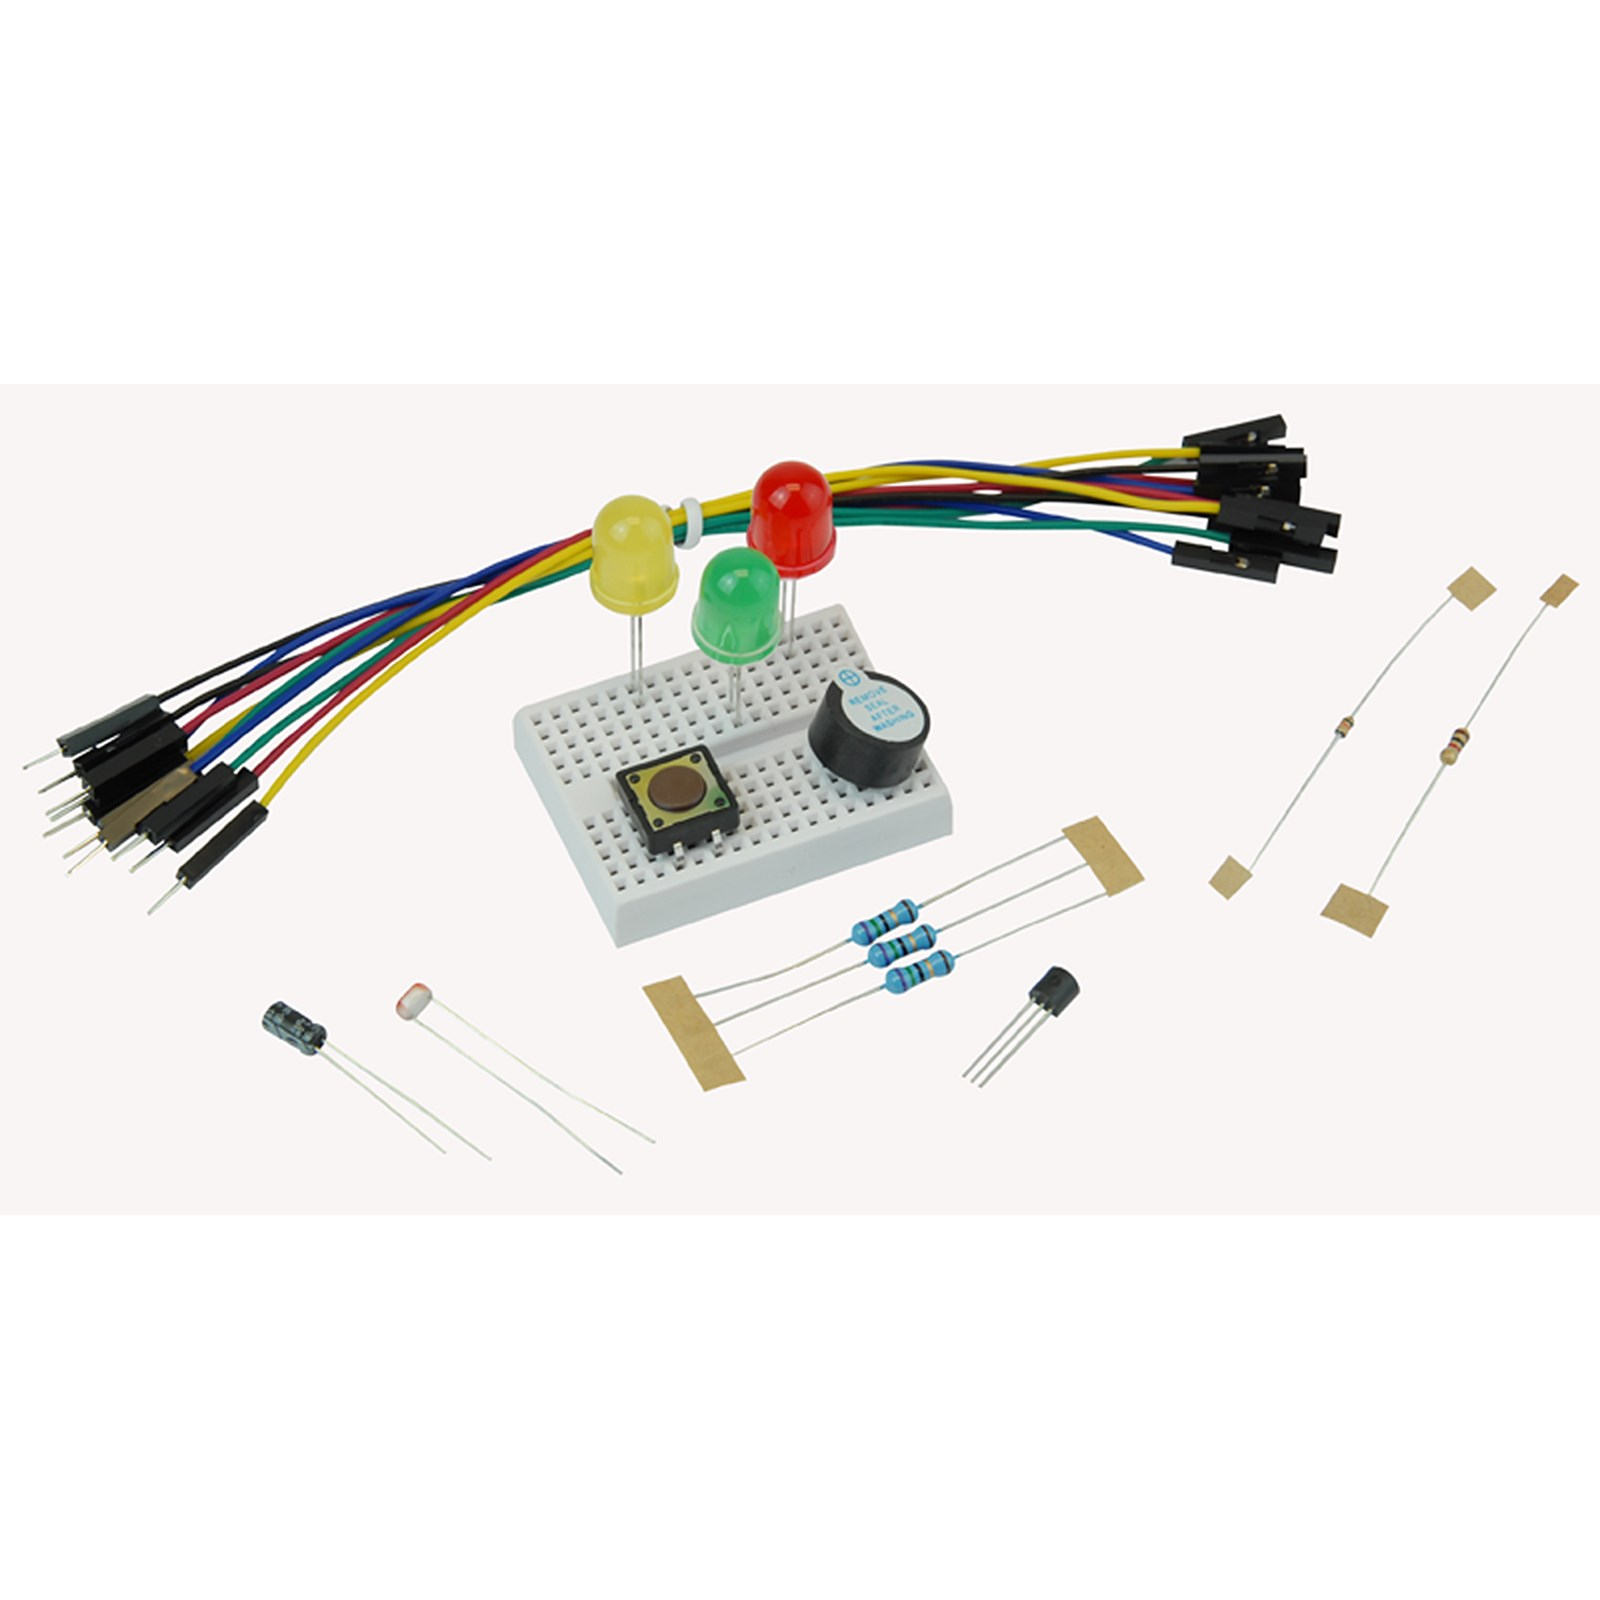 Product Hope Education New Projects In Electronics 10 For Raspberry Pi